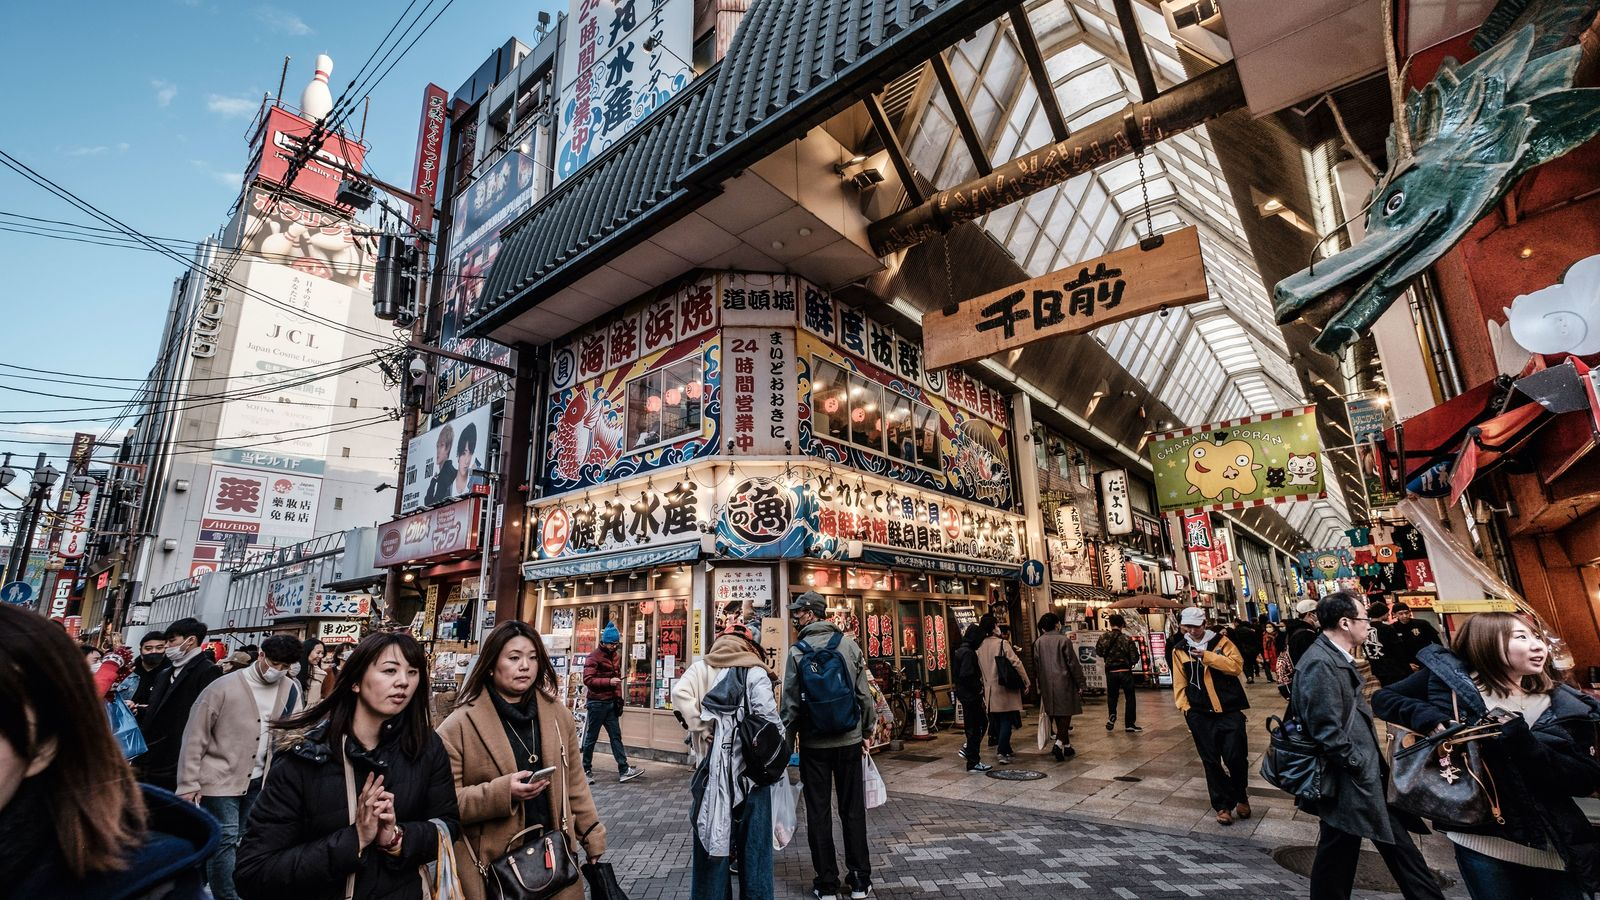 Colourful signage in Dontonbori, the city's best-known commercial concourse.